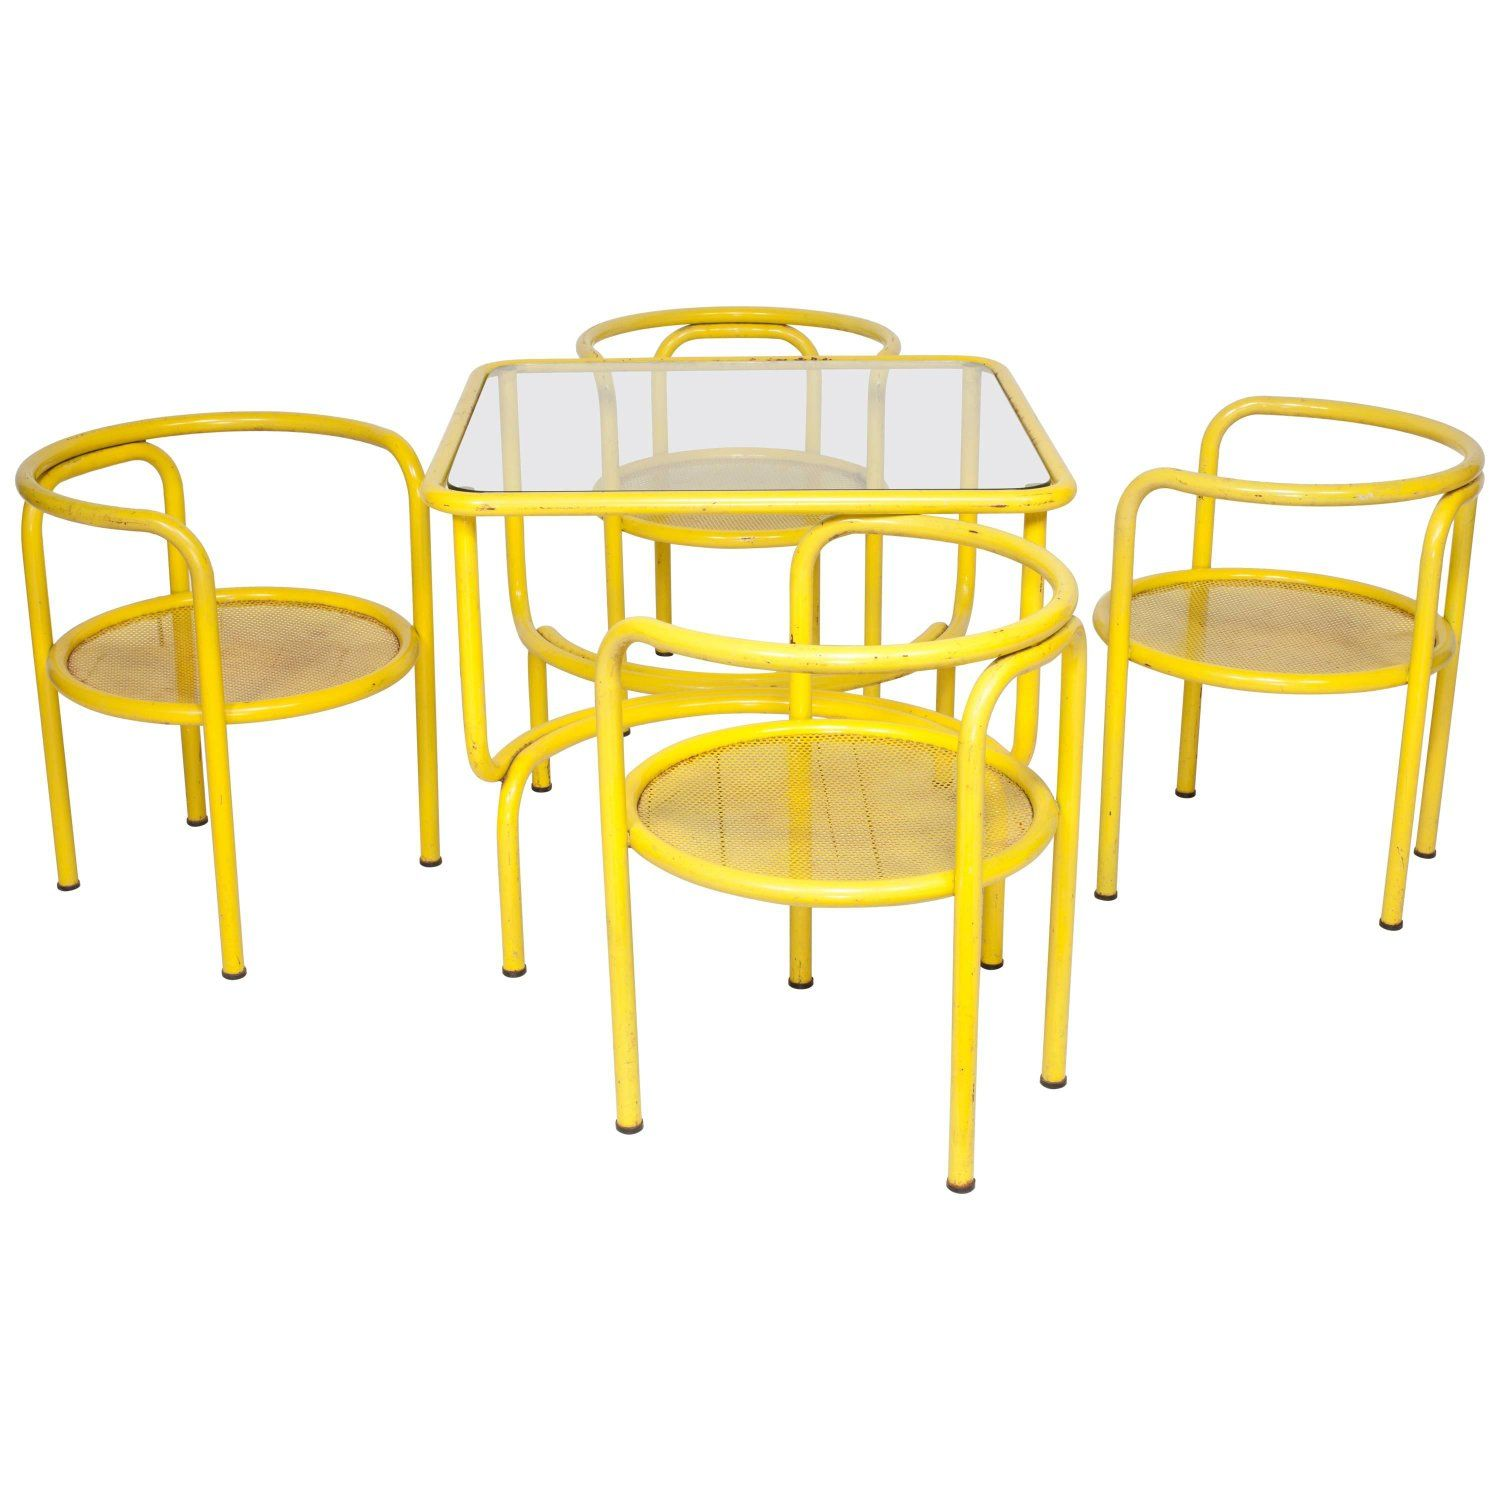 Yellow Metal Tubular Dining Table Set With Four Matching Chairs By Gae Aulenti Dining Table Setting Matching Chairs Dining Table